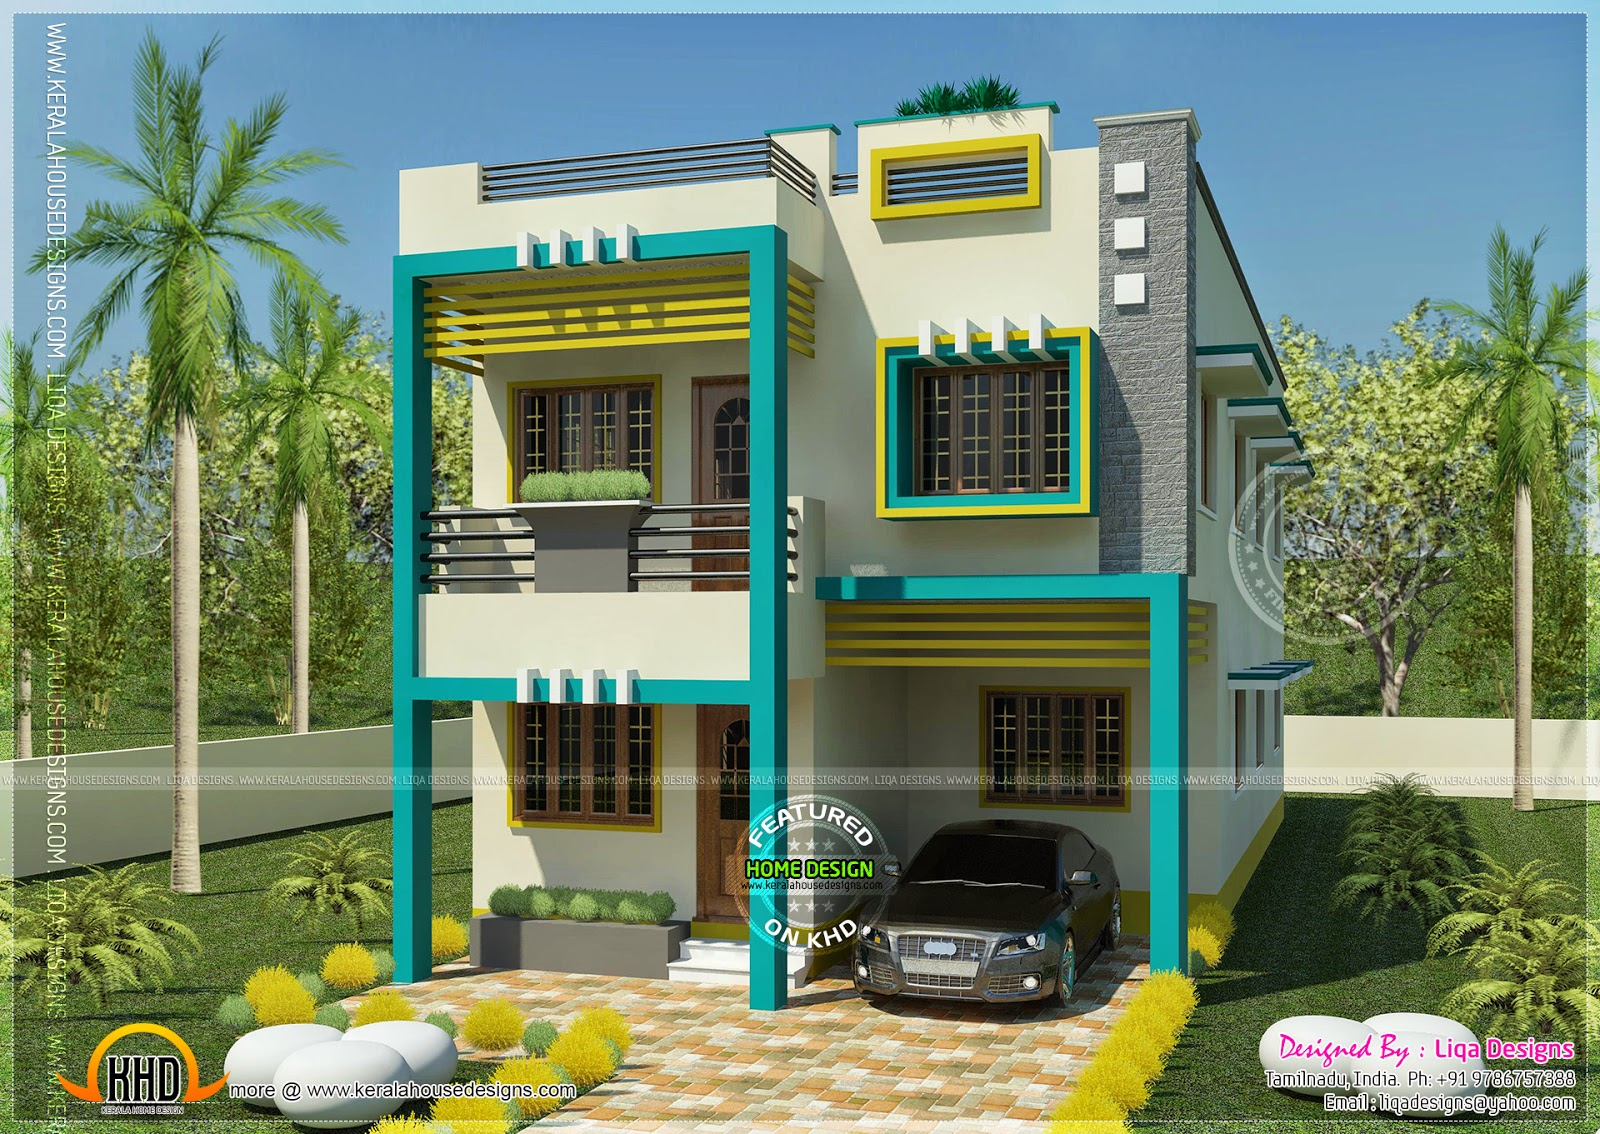 Siddu buzz online kerala home design for Home designs in tamilnadu